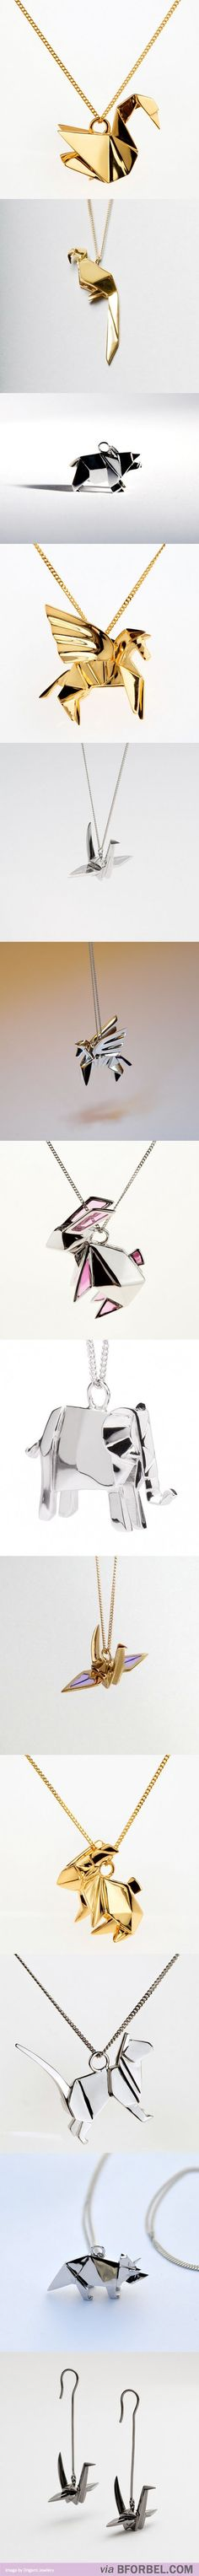 b for bel: Origami Jewelry